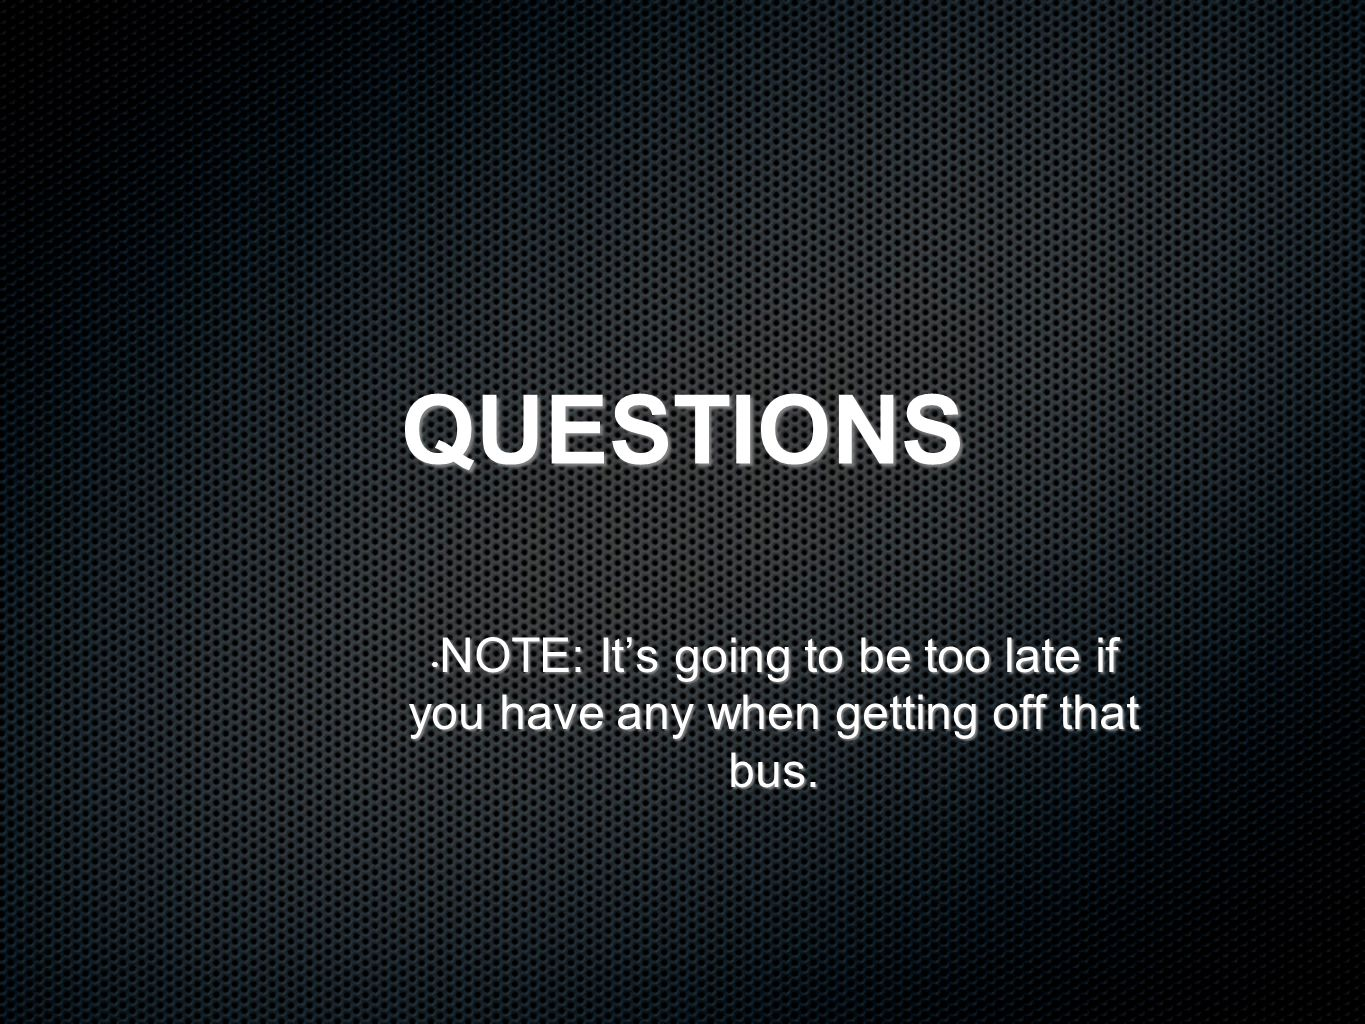 QUESTIONS NOTE: It's going to be too late if you have any when getting off that bus.